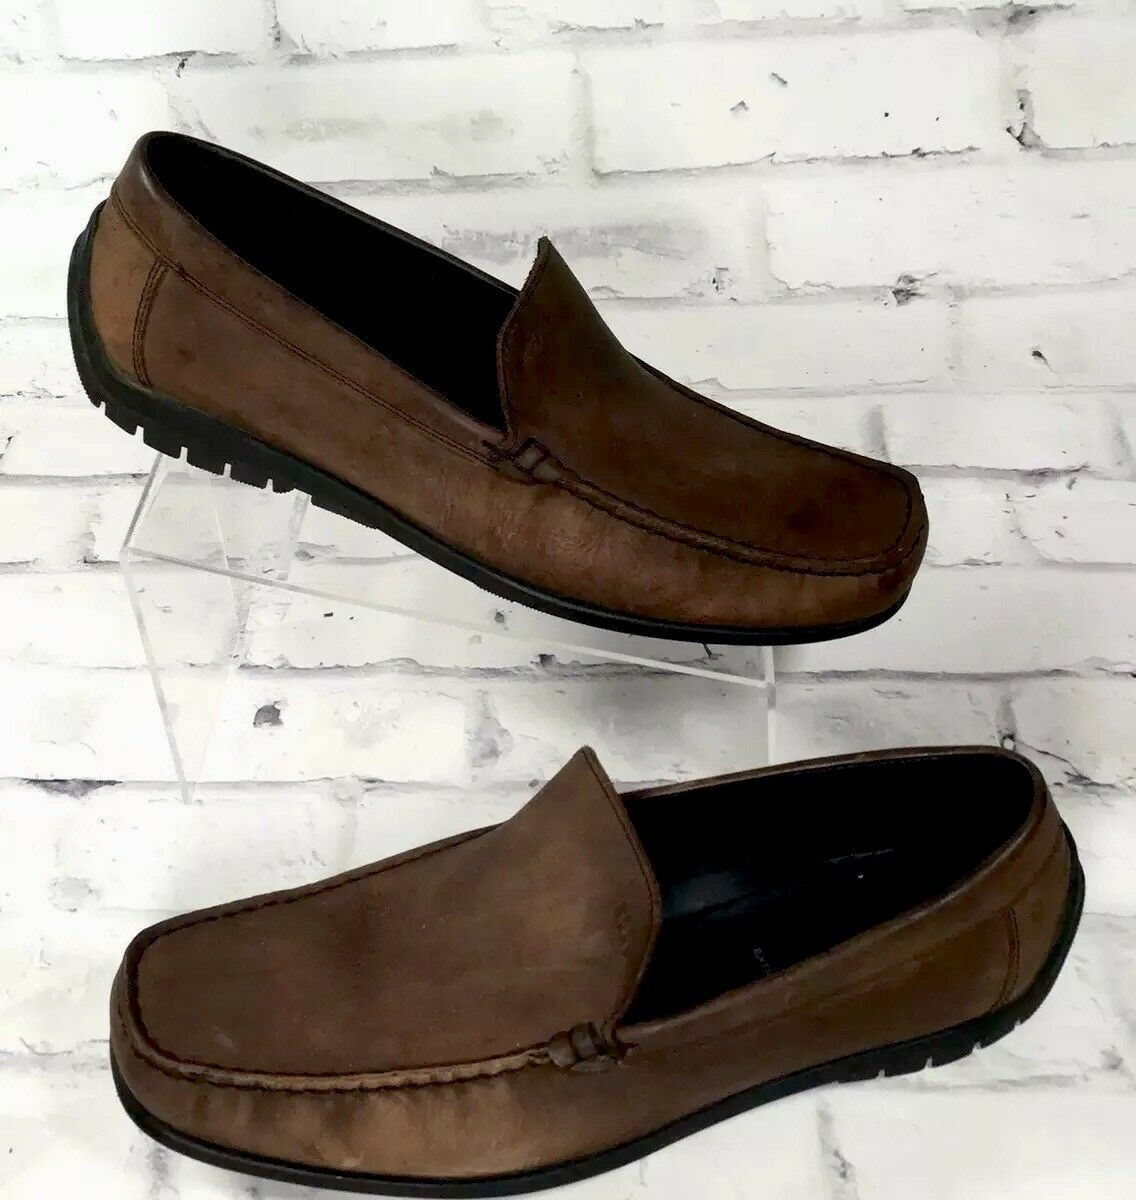 Mens Ecco Brown Leather Loafers size 46 Casual Slip On Very Nice